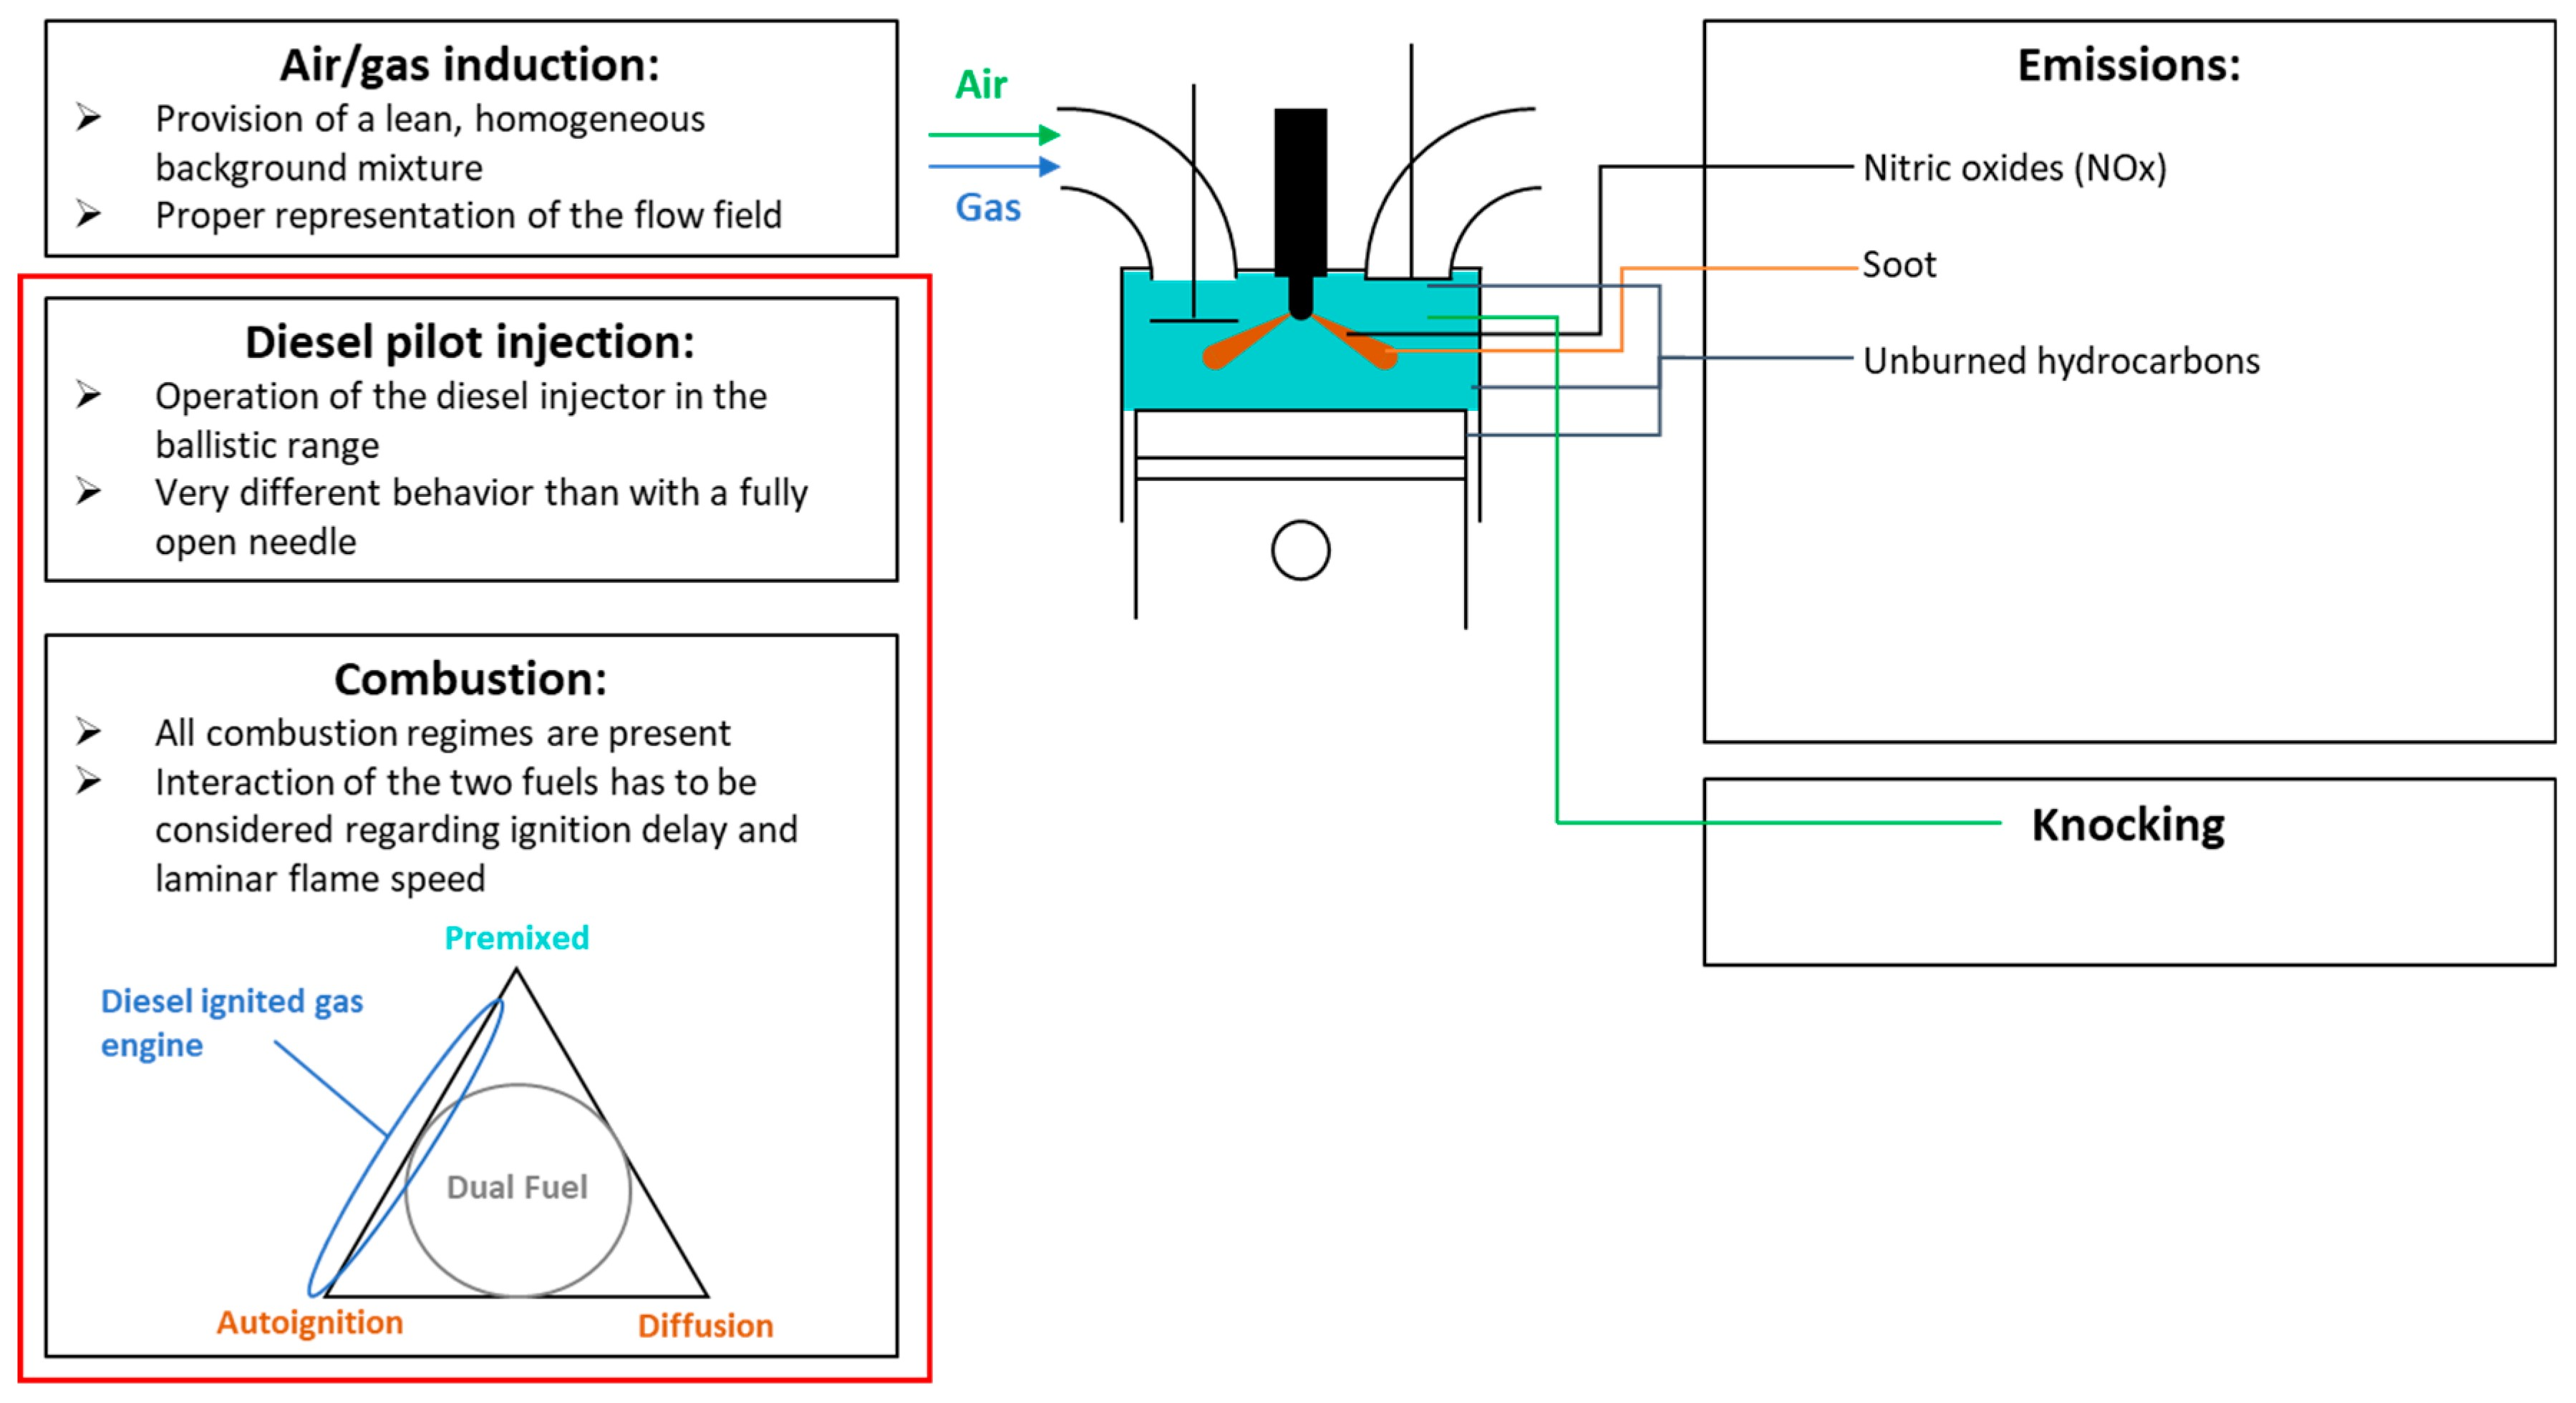 Simple Diesel Engine Diagram Energies Free Full Text Of Simple Diesel Engine Diagram 94 Windstar Wiring Diagram Wiring Diagram Datasource